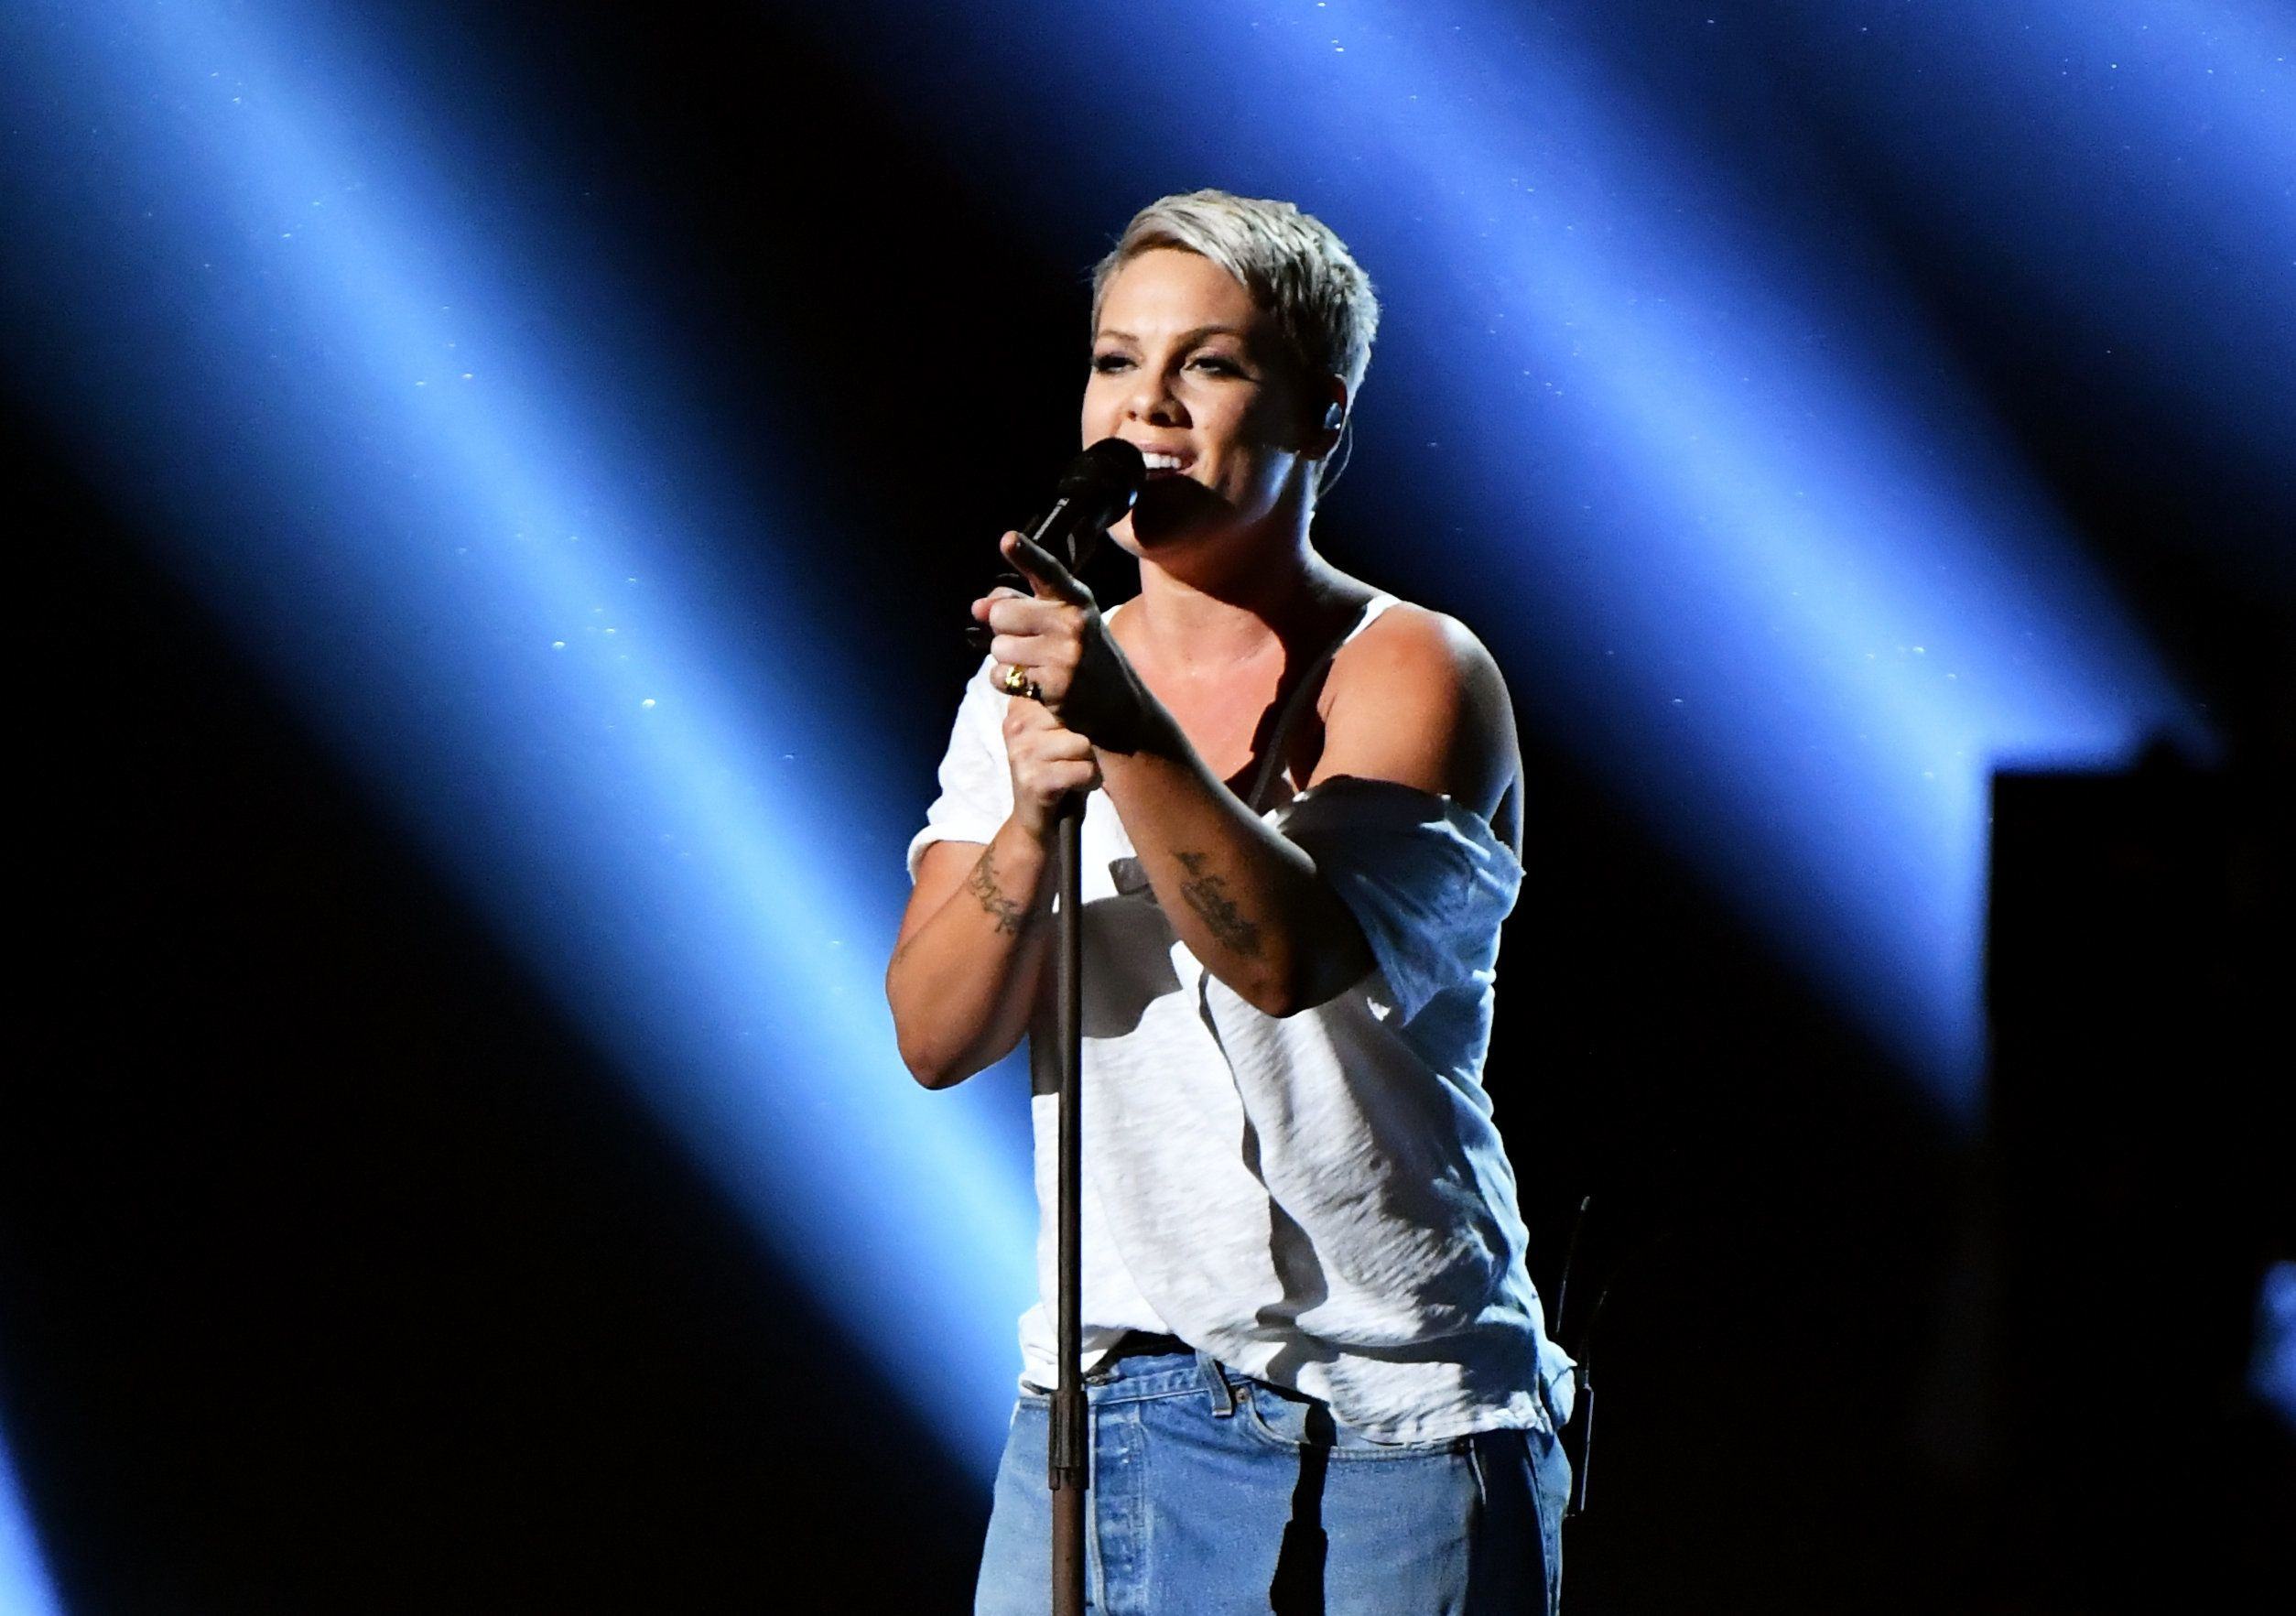 Pink performs at the 2018 Grammy Awards on Jan. 28 in New